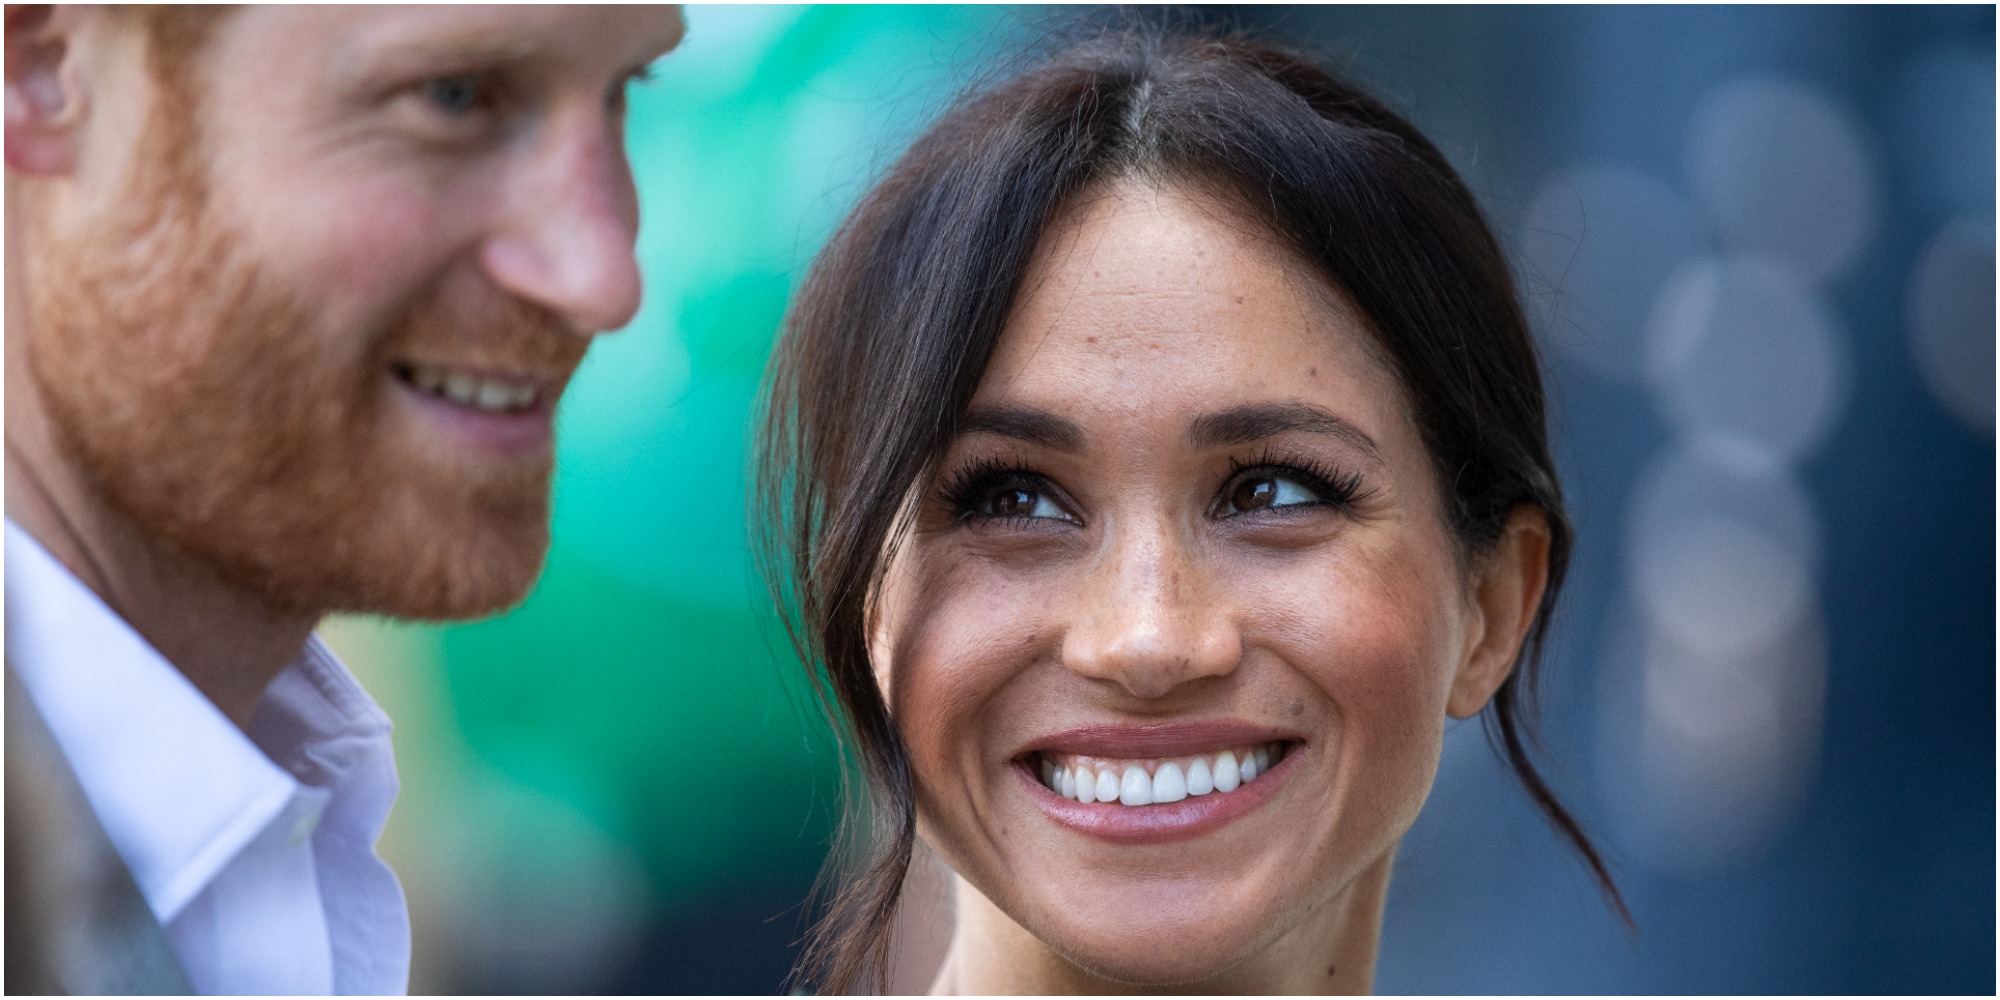 Prince Harry and Meghan Markle pose for a paparazzi photo.